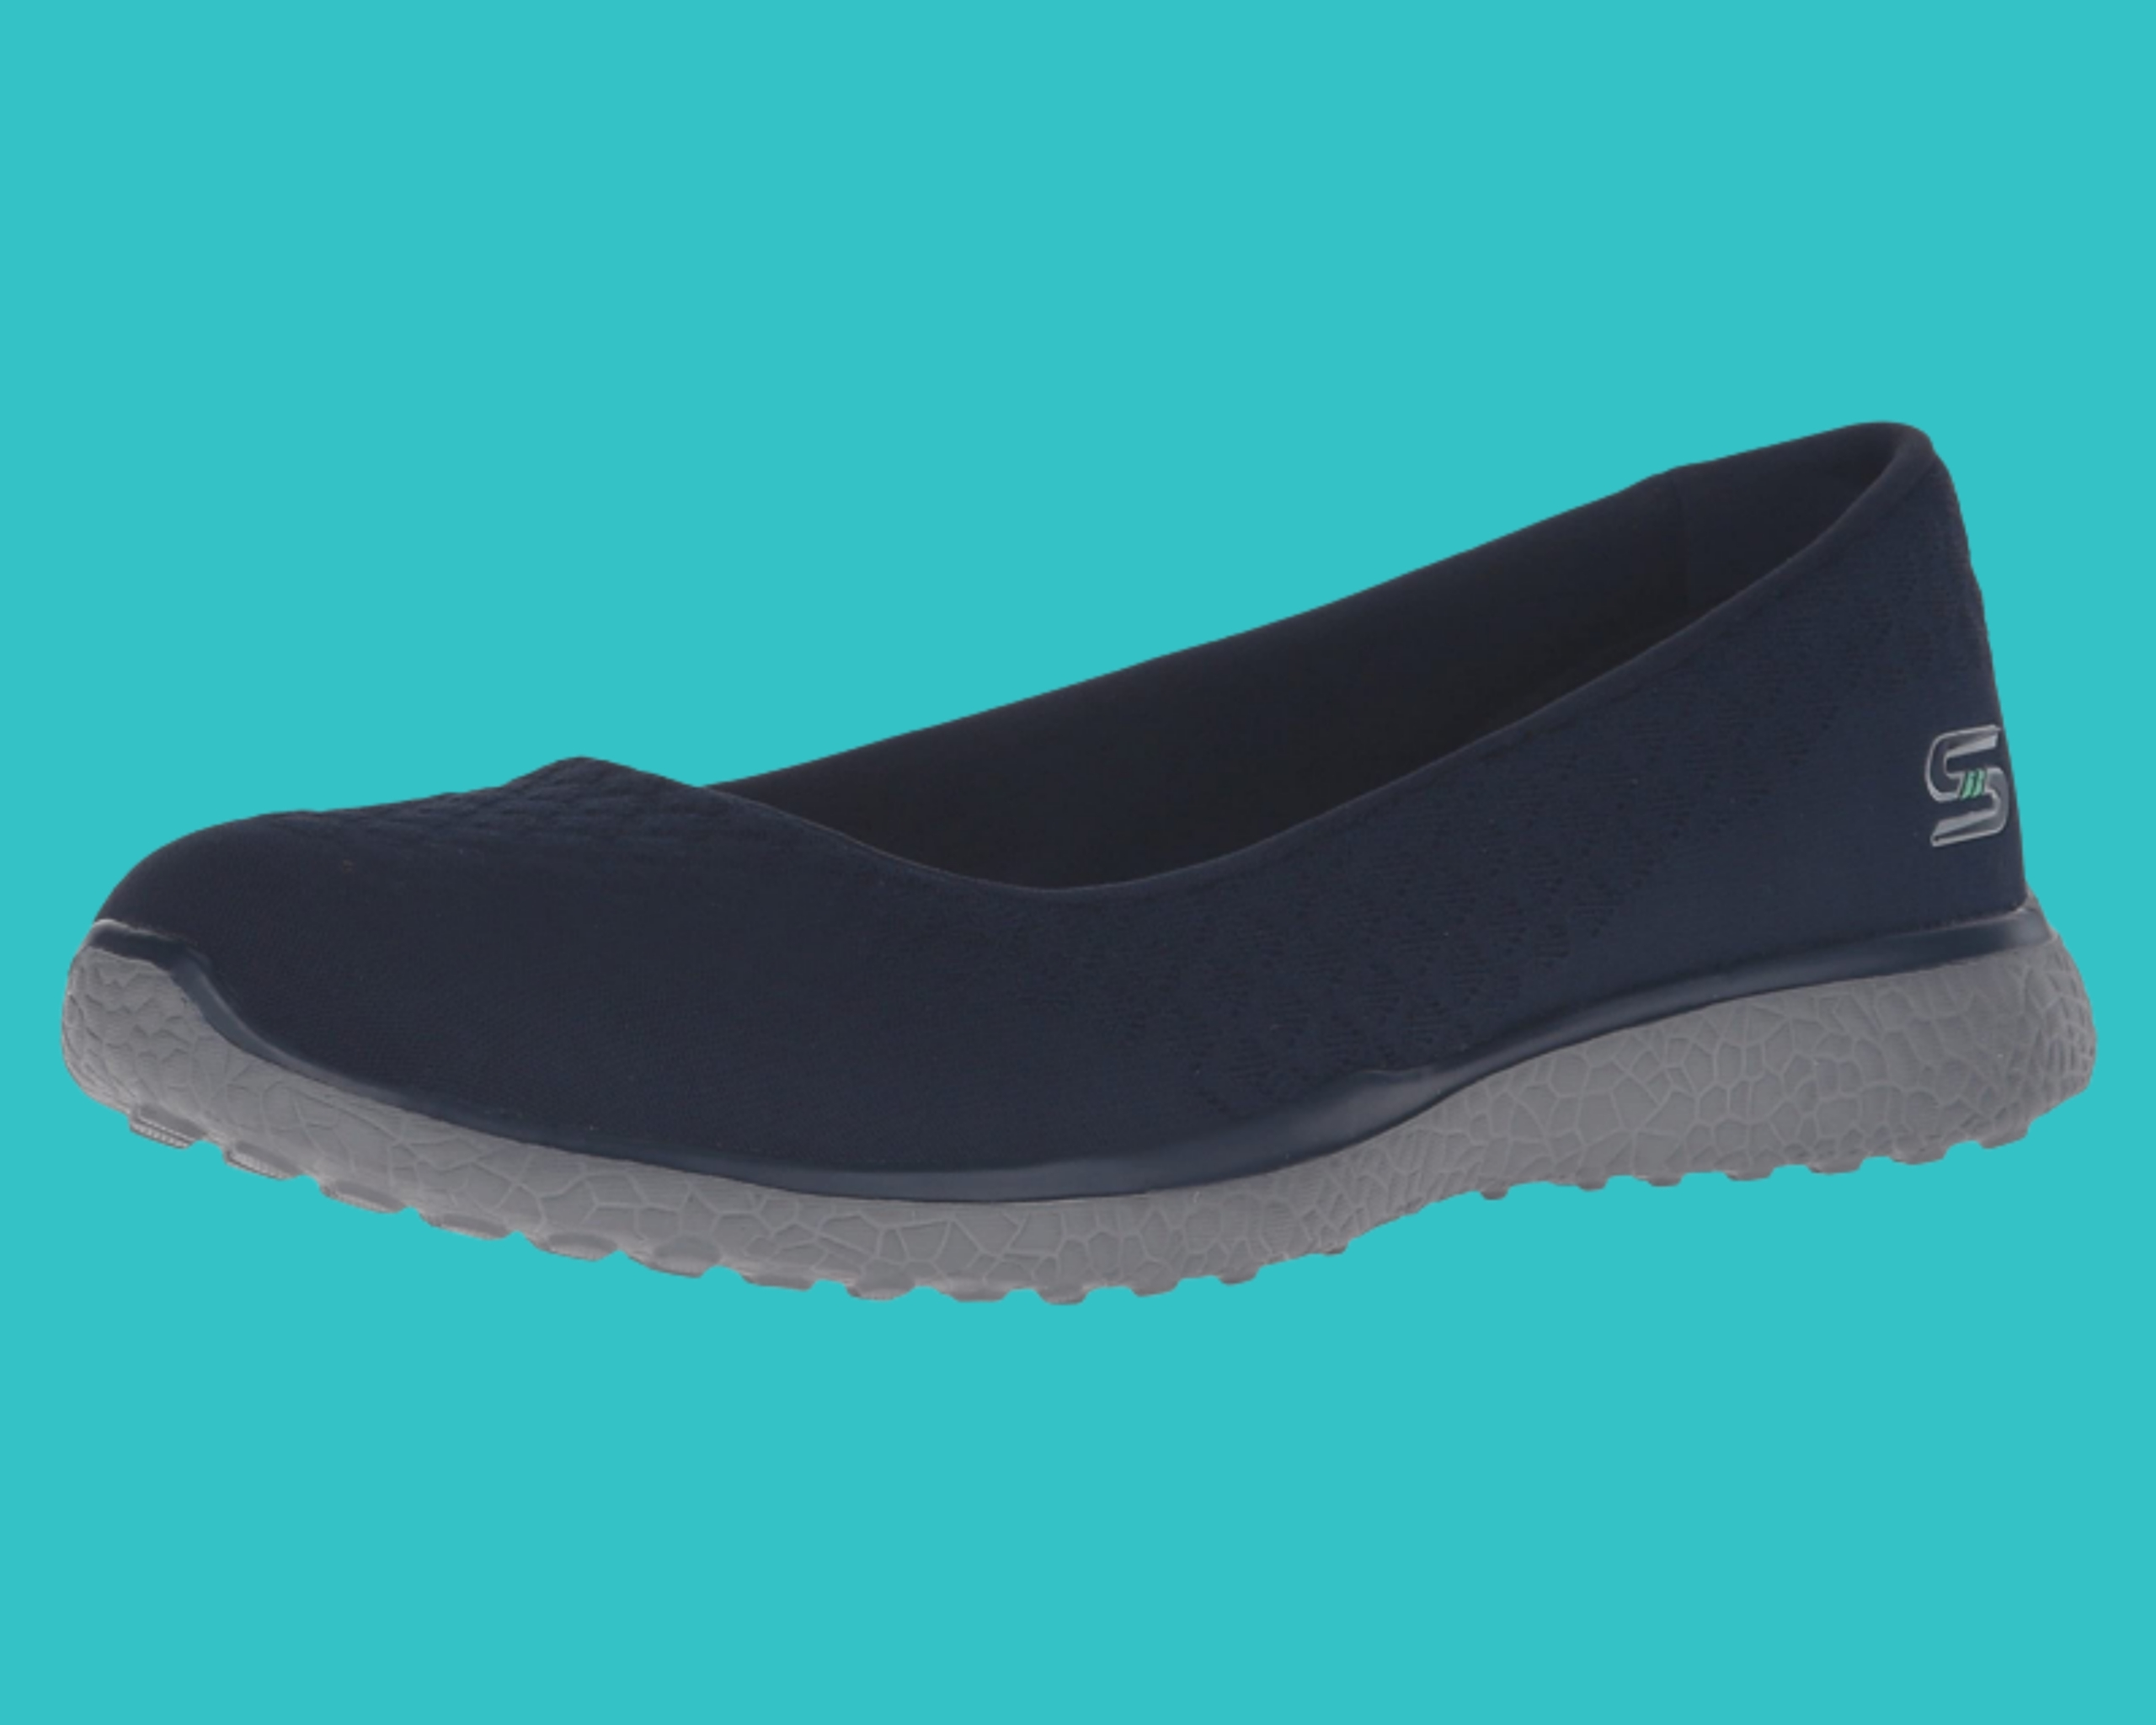 Best maternity shoes for women